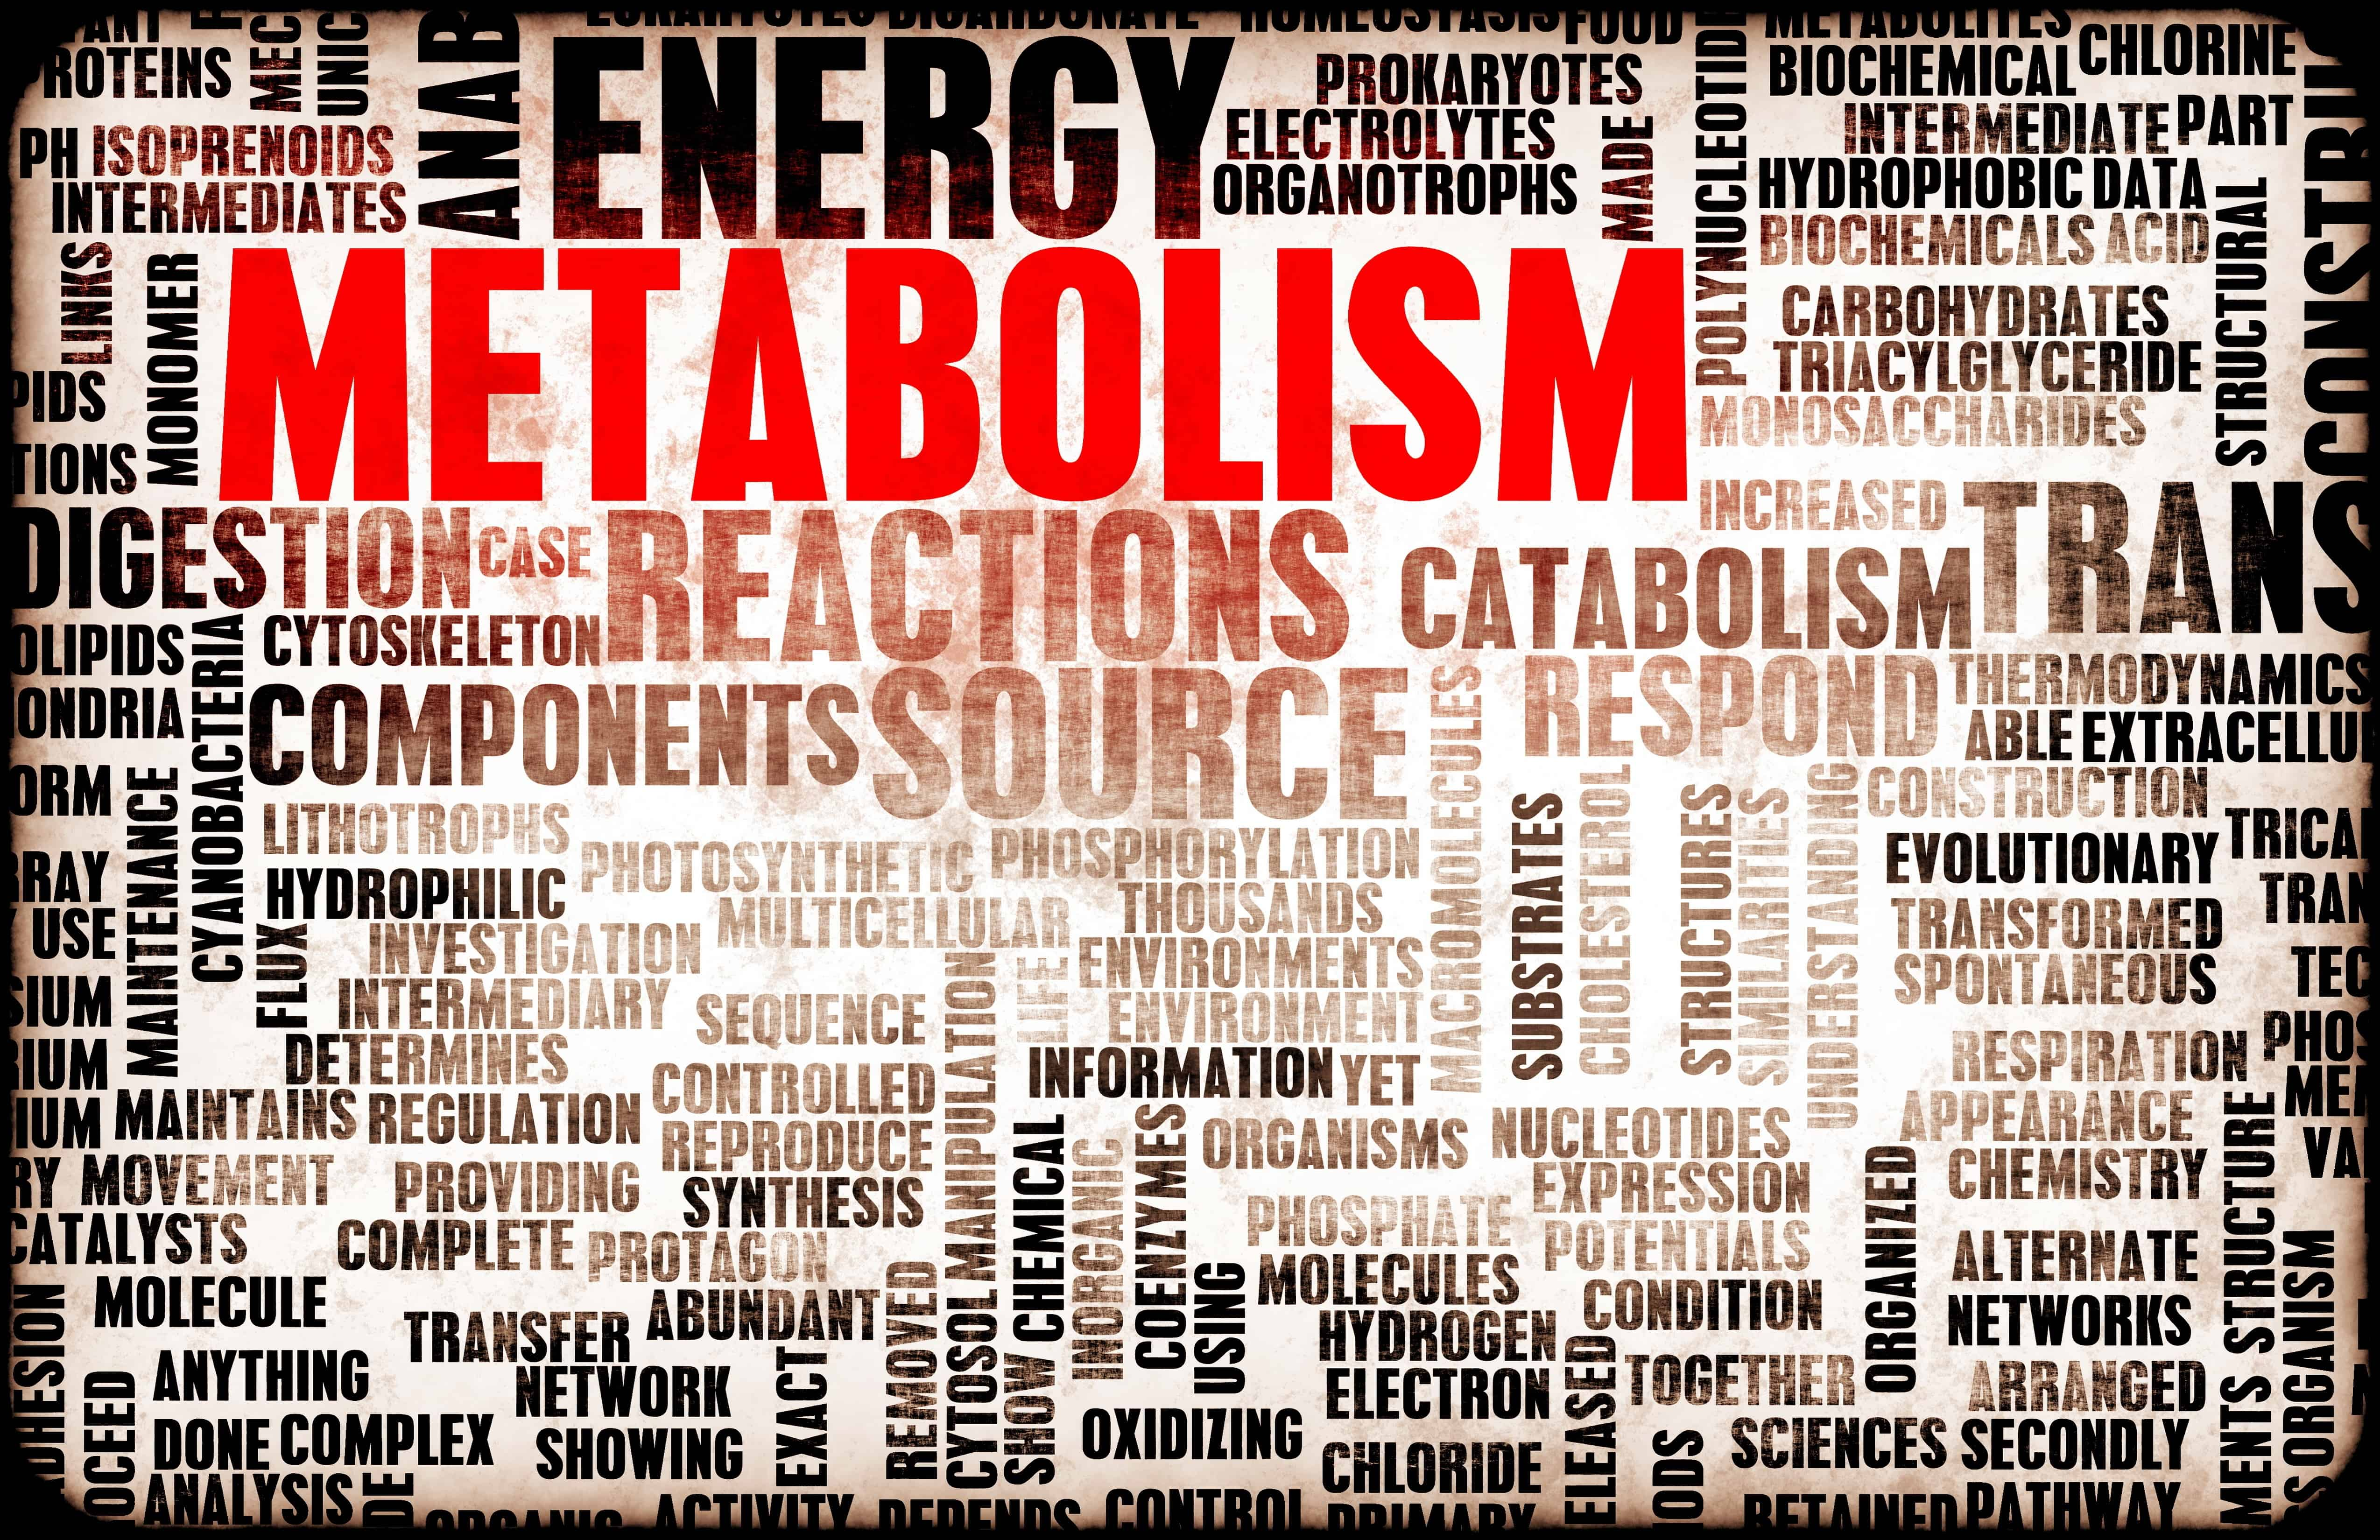 Four Common Mistakes That Slow Your Metabolism